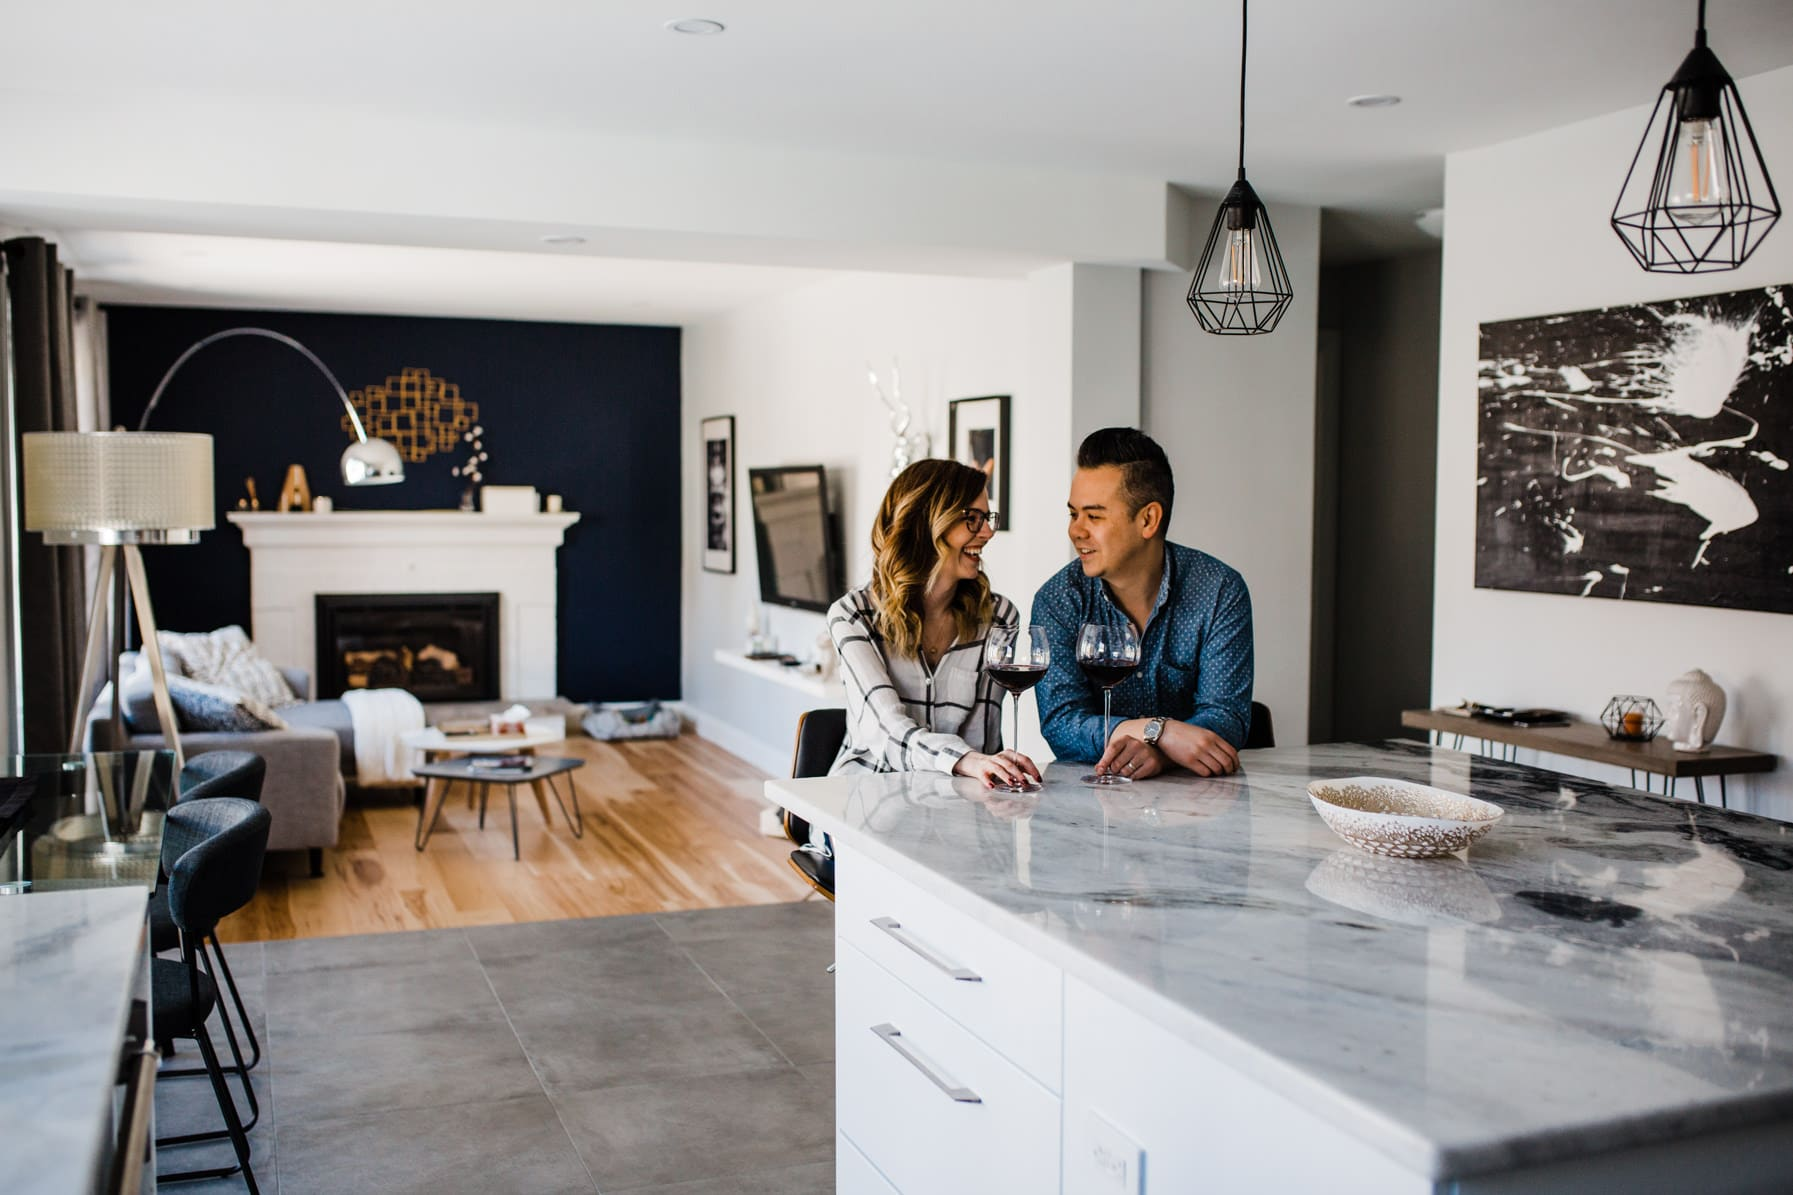 Couple drink wine in kitchen - Cozy At-Home Photos Lifestyle